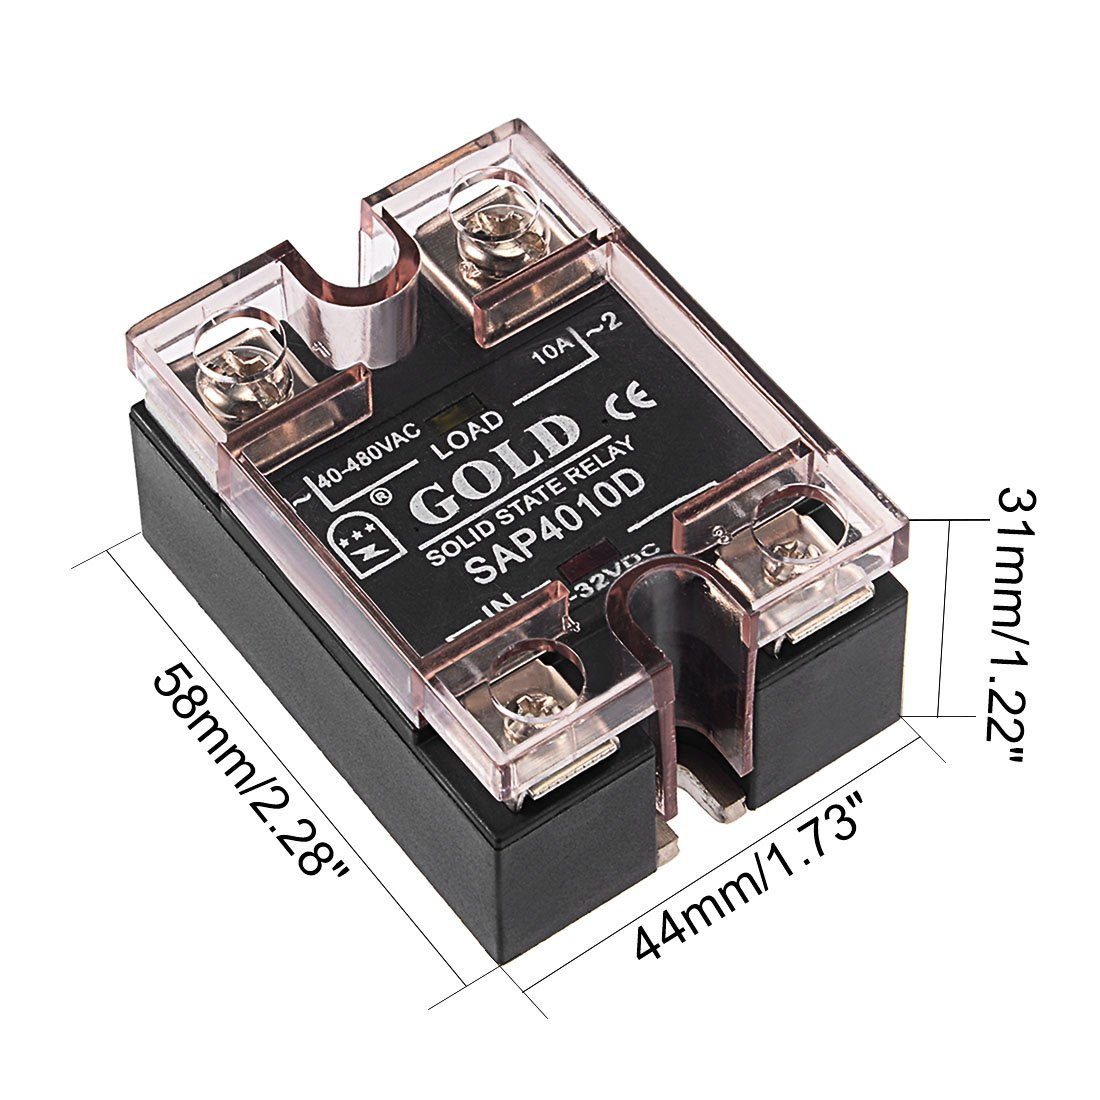 Uxcell Sap4005d Dc 3 32v To Ac 40 480v 5a Single Phase Solid State Relay Leakage Module Home Improvement